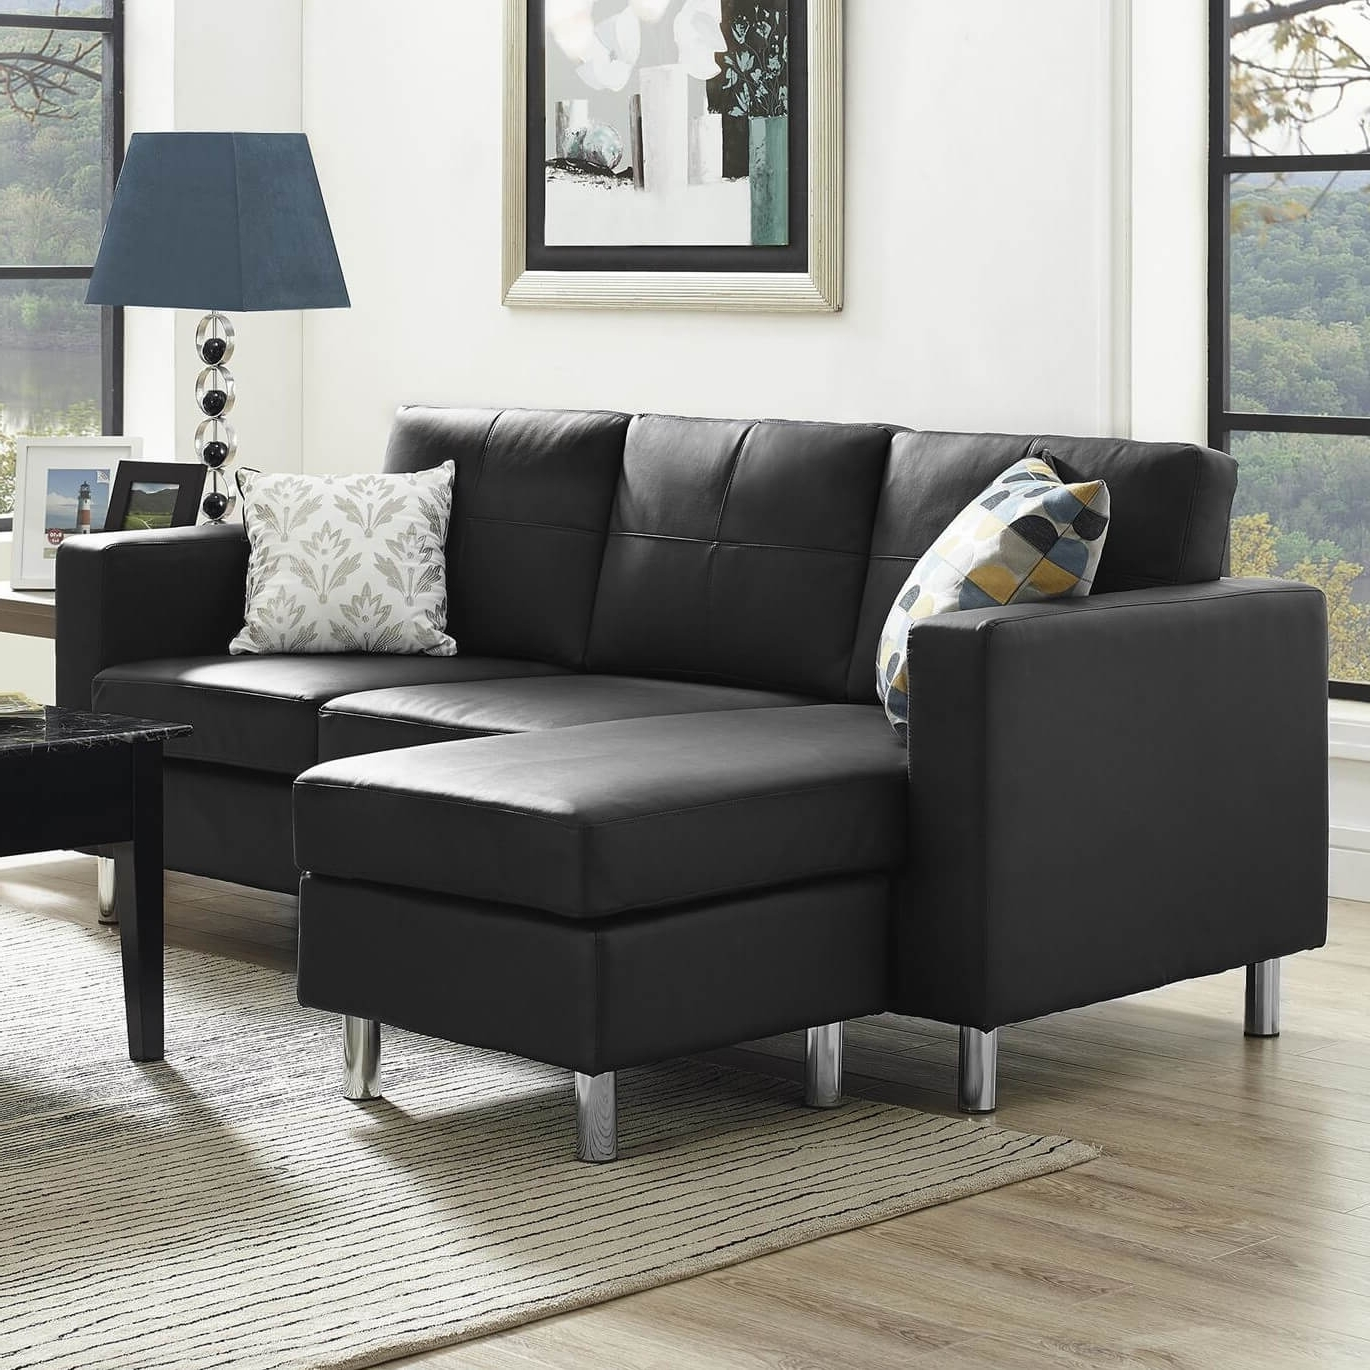 Well Known Modern Sectional Sofas For Small Spaces Throughout 40 Cheap Sectional Sofas Under $500 For  (View 20 of 20)